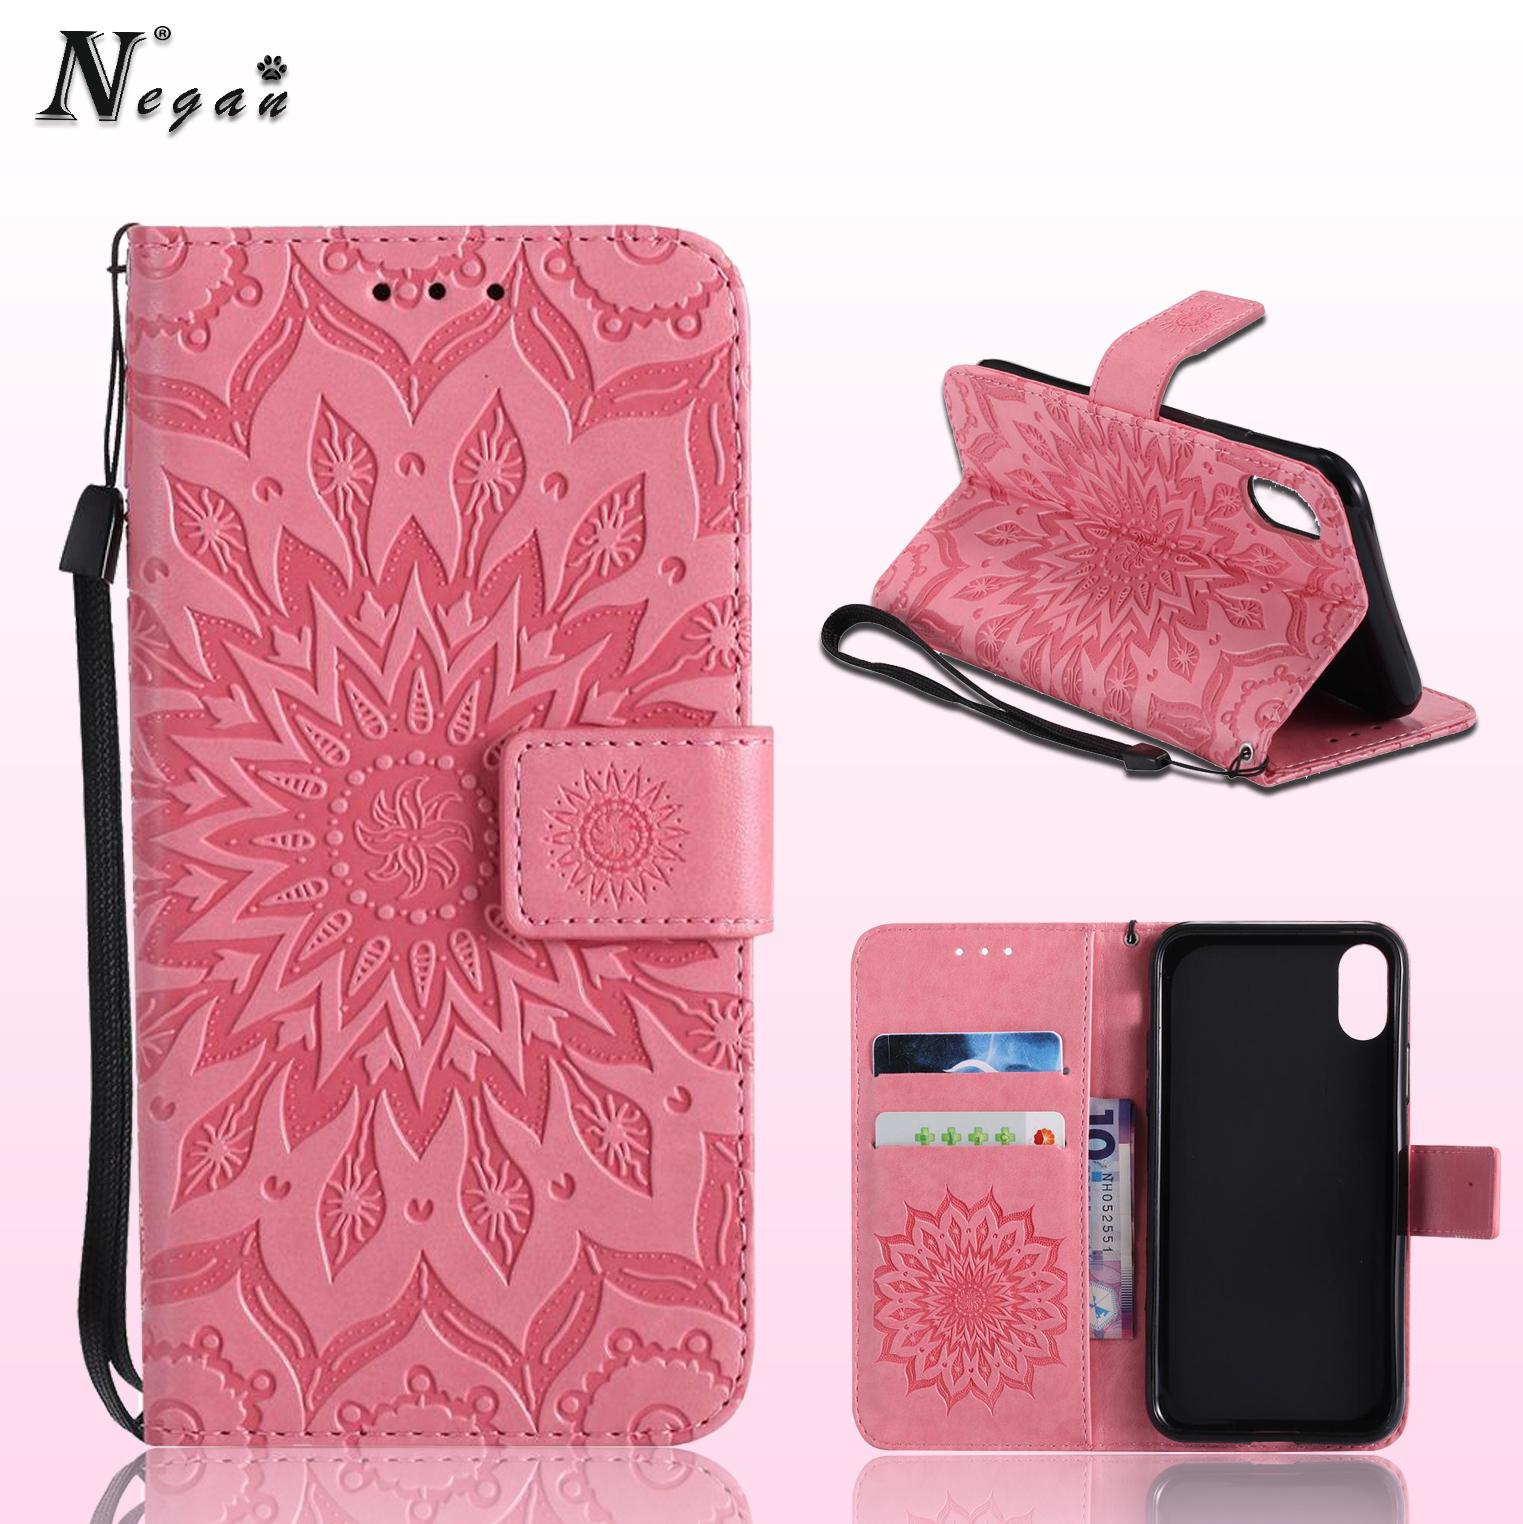 Coining Texture Sunflower Pattern Leather Wallet Phone Cases For Iphone X 8 7 Note 8 S8 S9 Wallet Pouch With Card Slot Discount Cell Phone Cases Free Cell